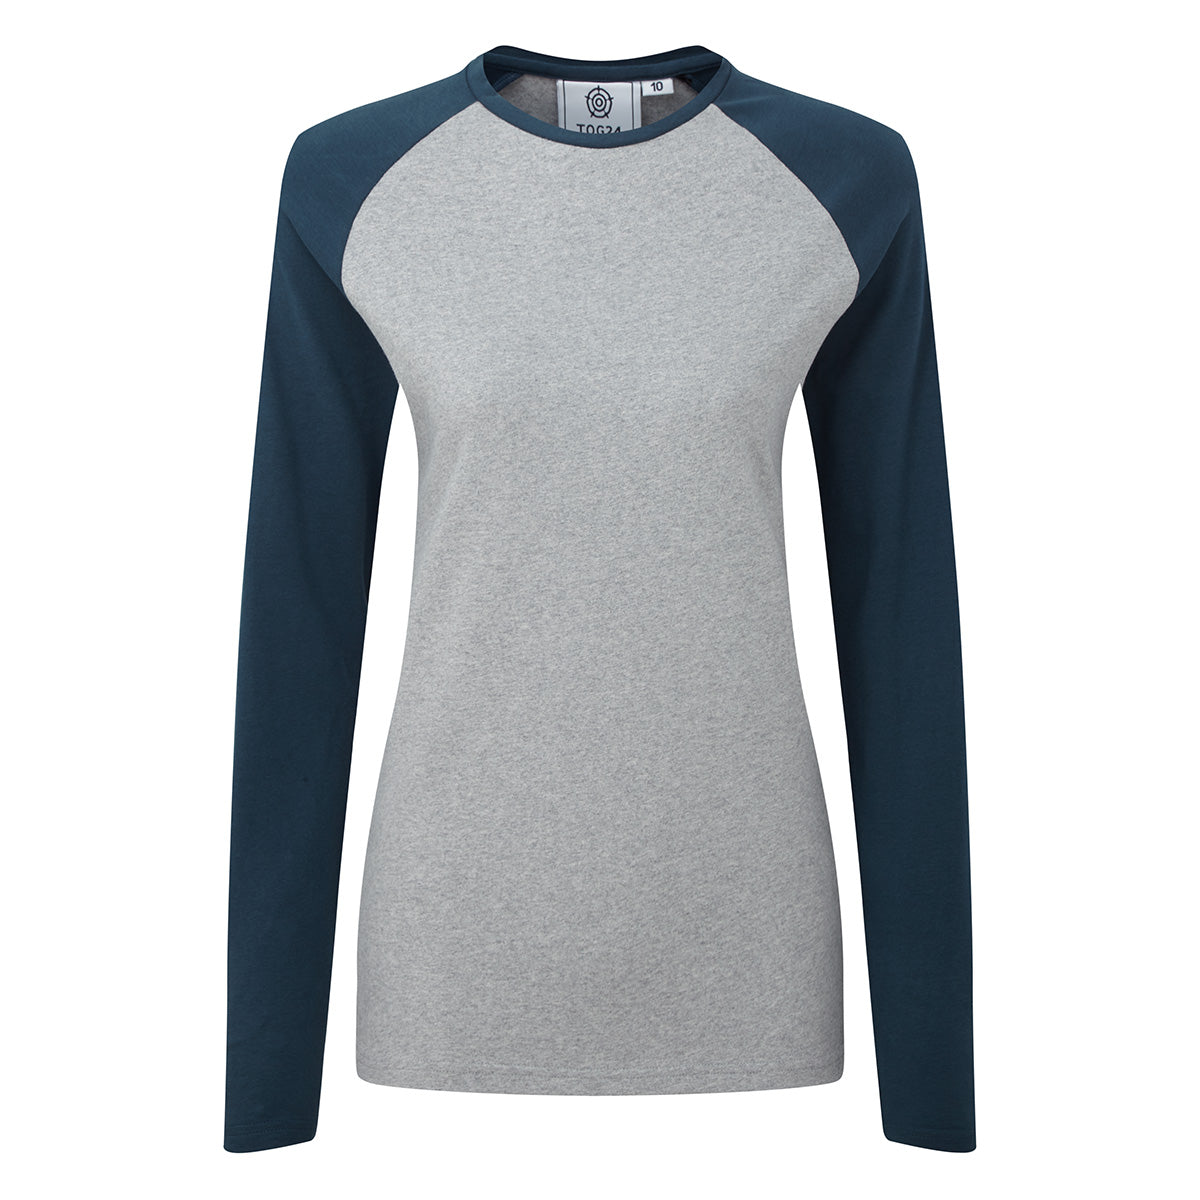 Thirn Womens Long Sleeve Raglan T-Shirt - Ice Grey Marl/Atlantic image 4